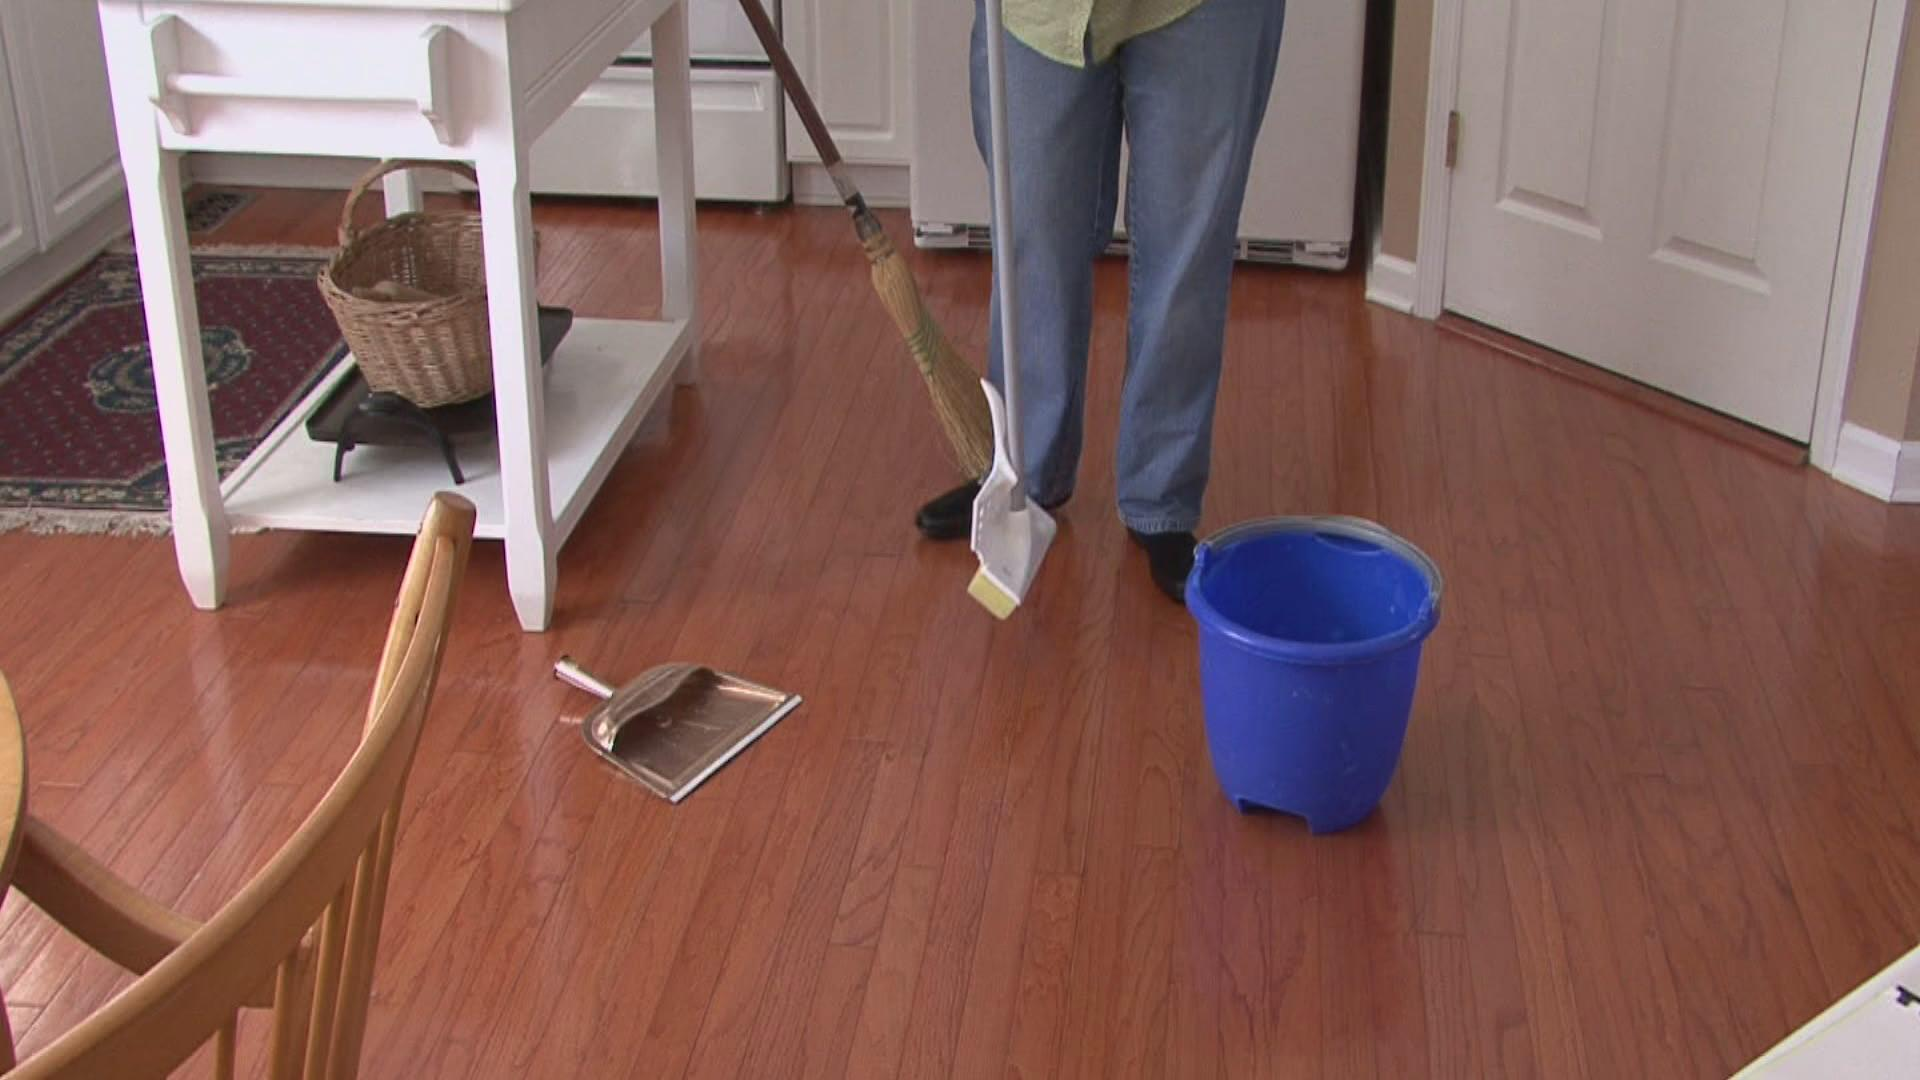 Deep Clean Hardwood Floors homemade hardwood floor cleaner so easy never buying store bought again deep cleaningcleaning How To Perform Deep Cleaning Hardwood Floors In An Effective Way